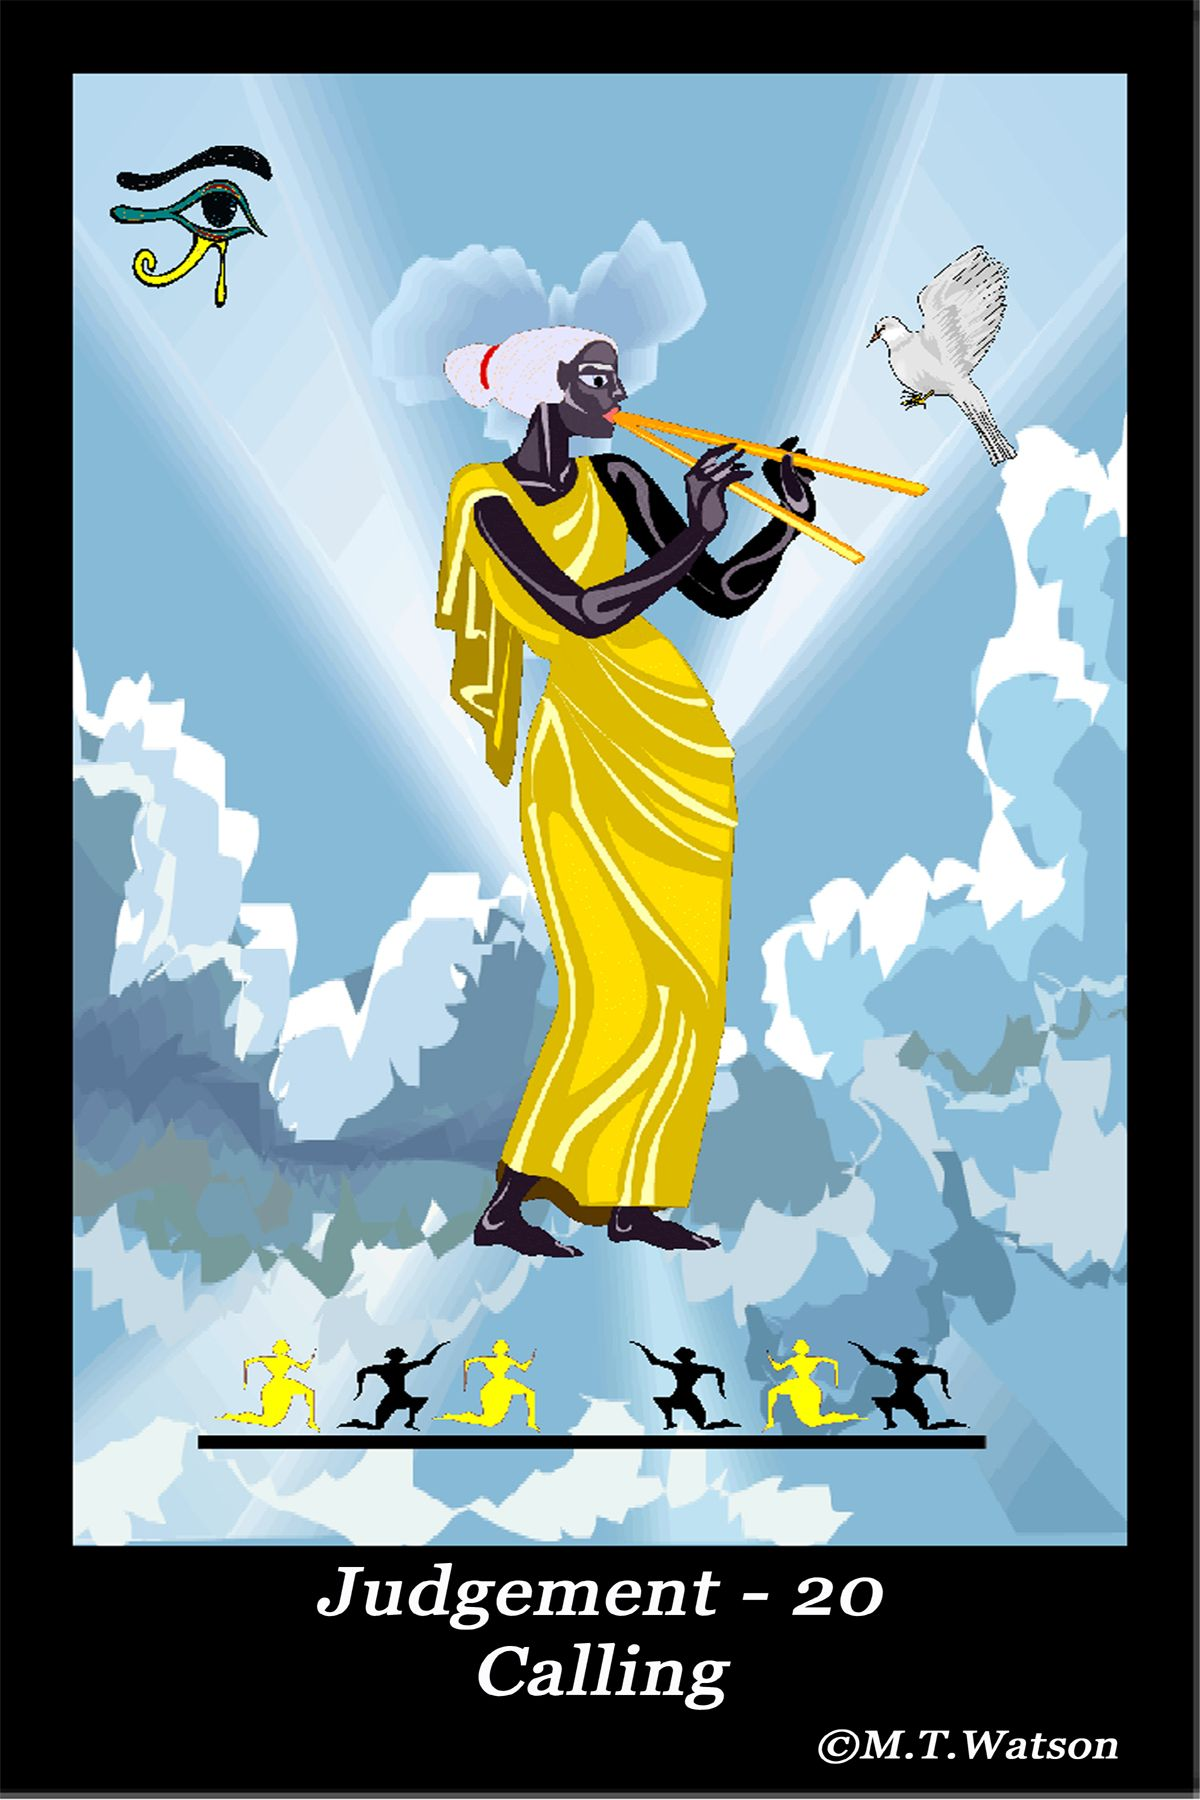 Judgement Tarot Card From The Multicultural Lucid Tarot Deck Sold At Etsy Shop Oakwoodview At Https Judgement Tarot Card Major Arcana Cards Tarot Major Arcana